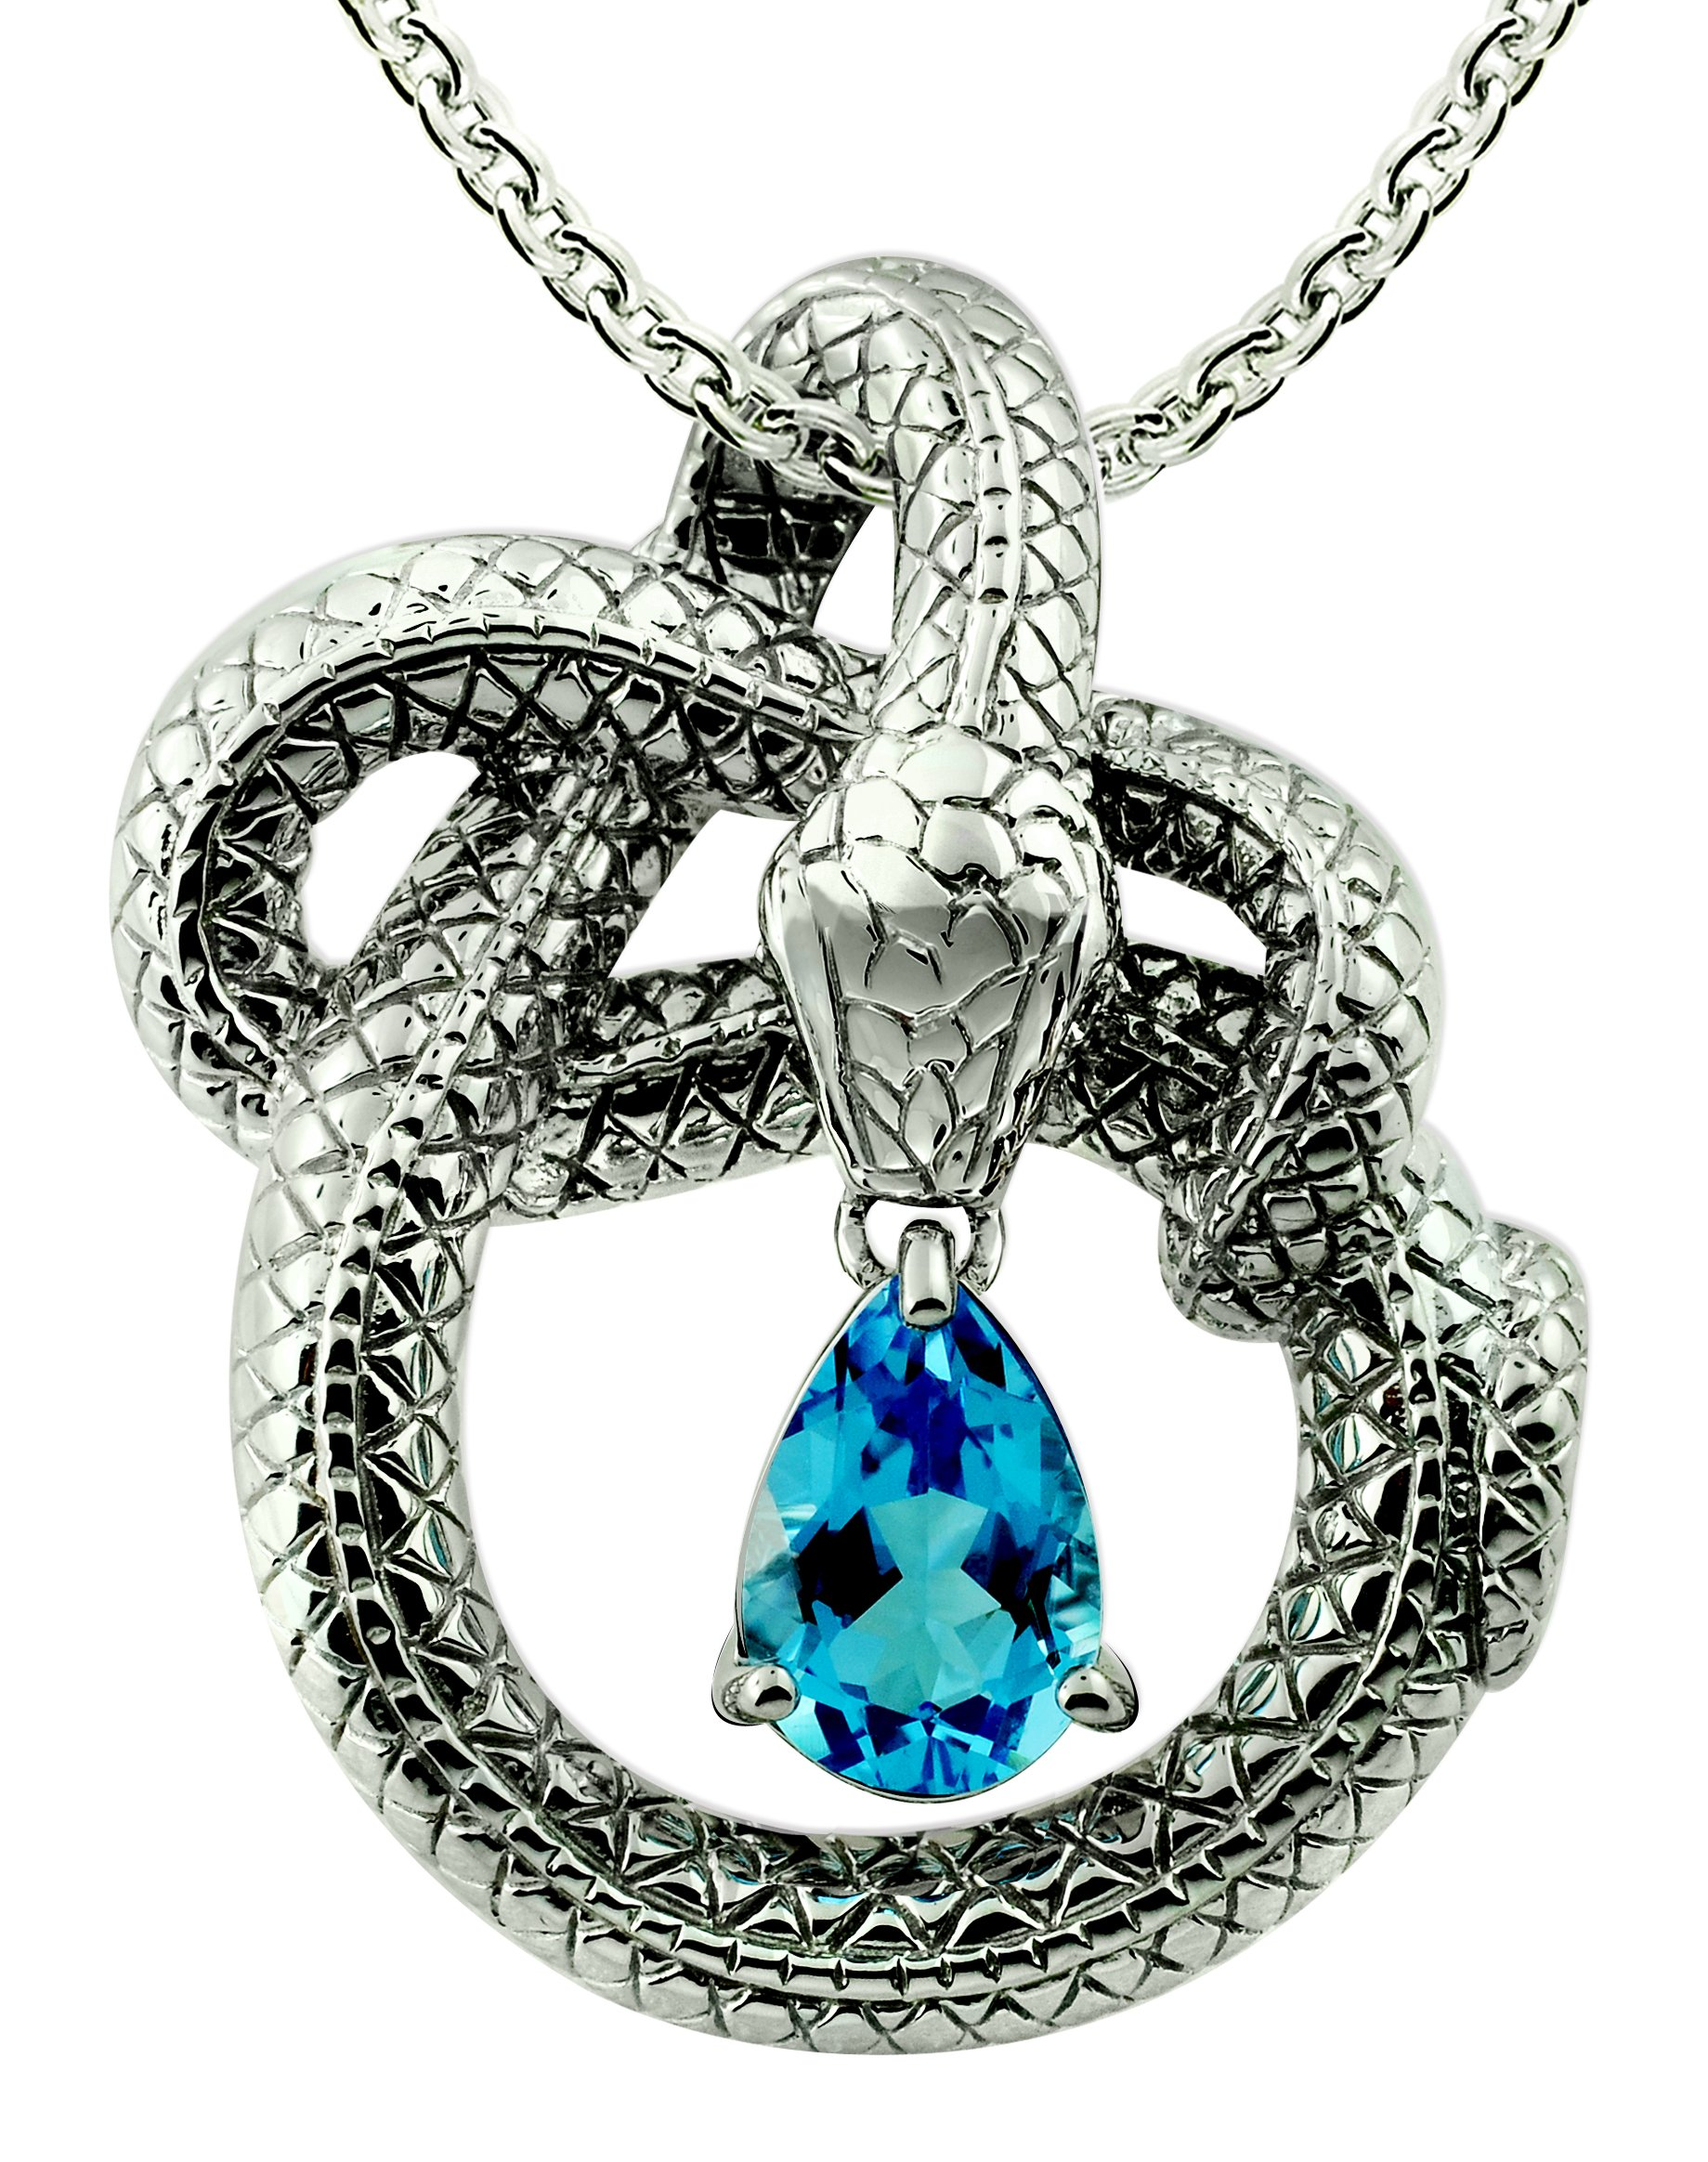 Sterling Silver 925 Pendant Necklace GENUINE GEMSTONE 3 Cts with RHODIUM-PLATED Finish, Snake Design (swiss-blue-topaz)